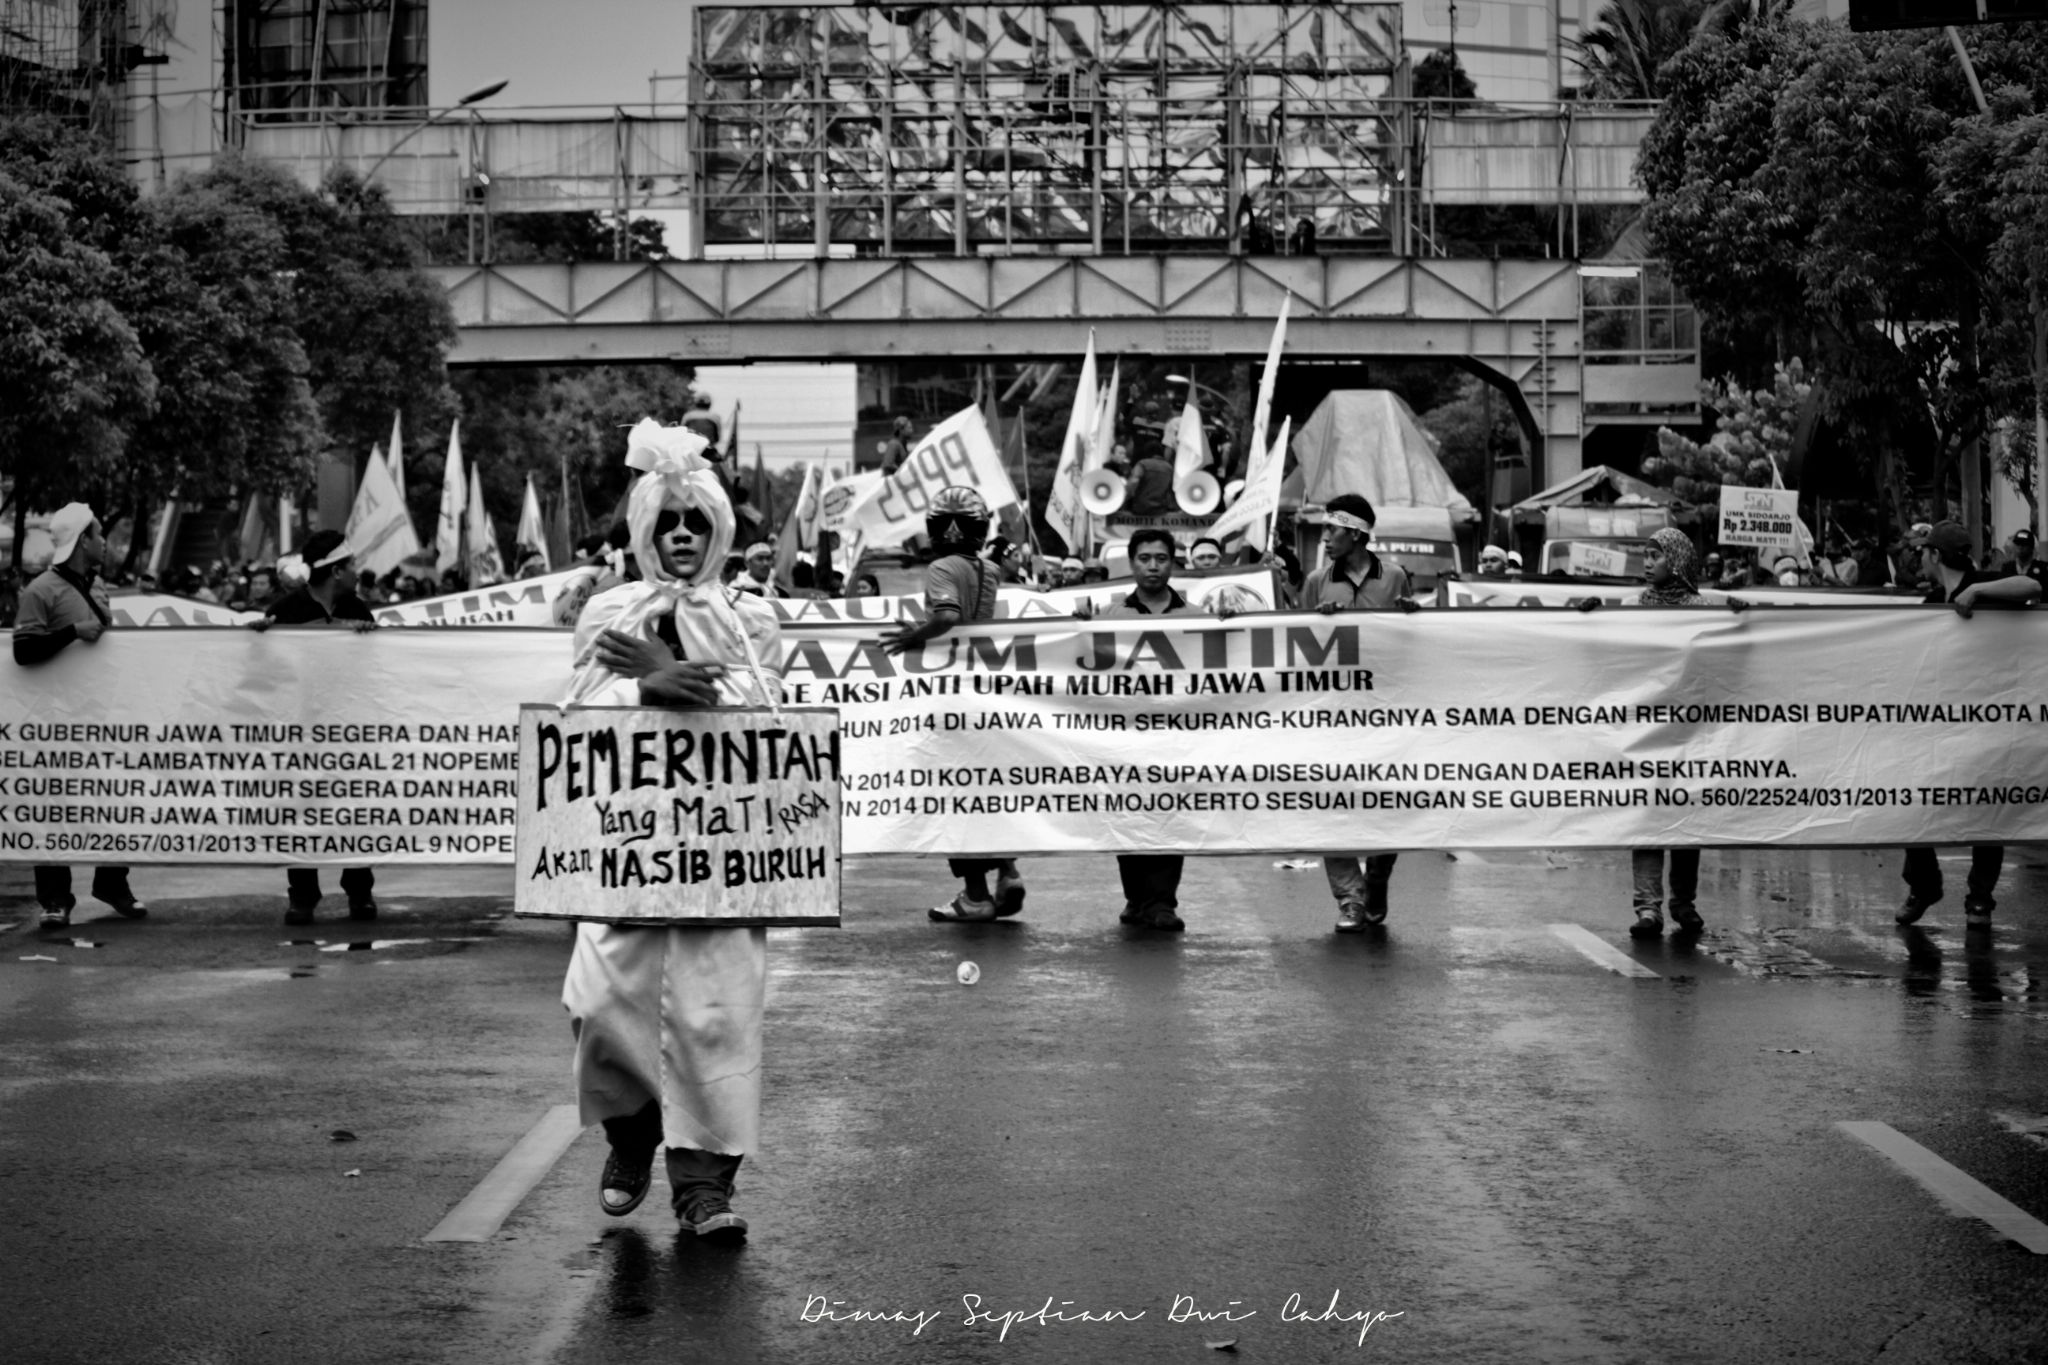 Demonstration of workers by dimas gondol